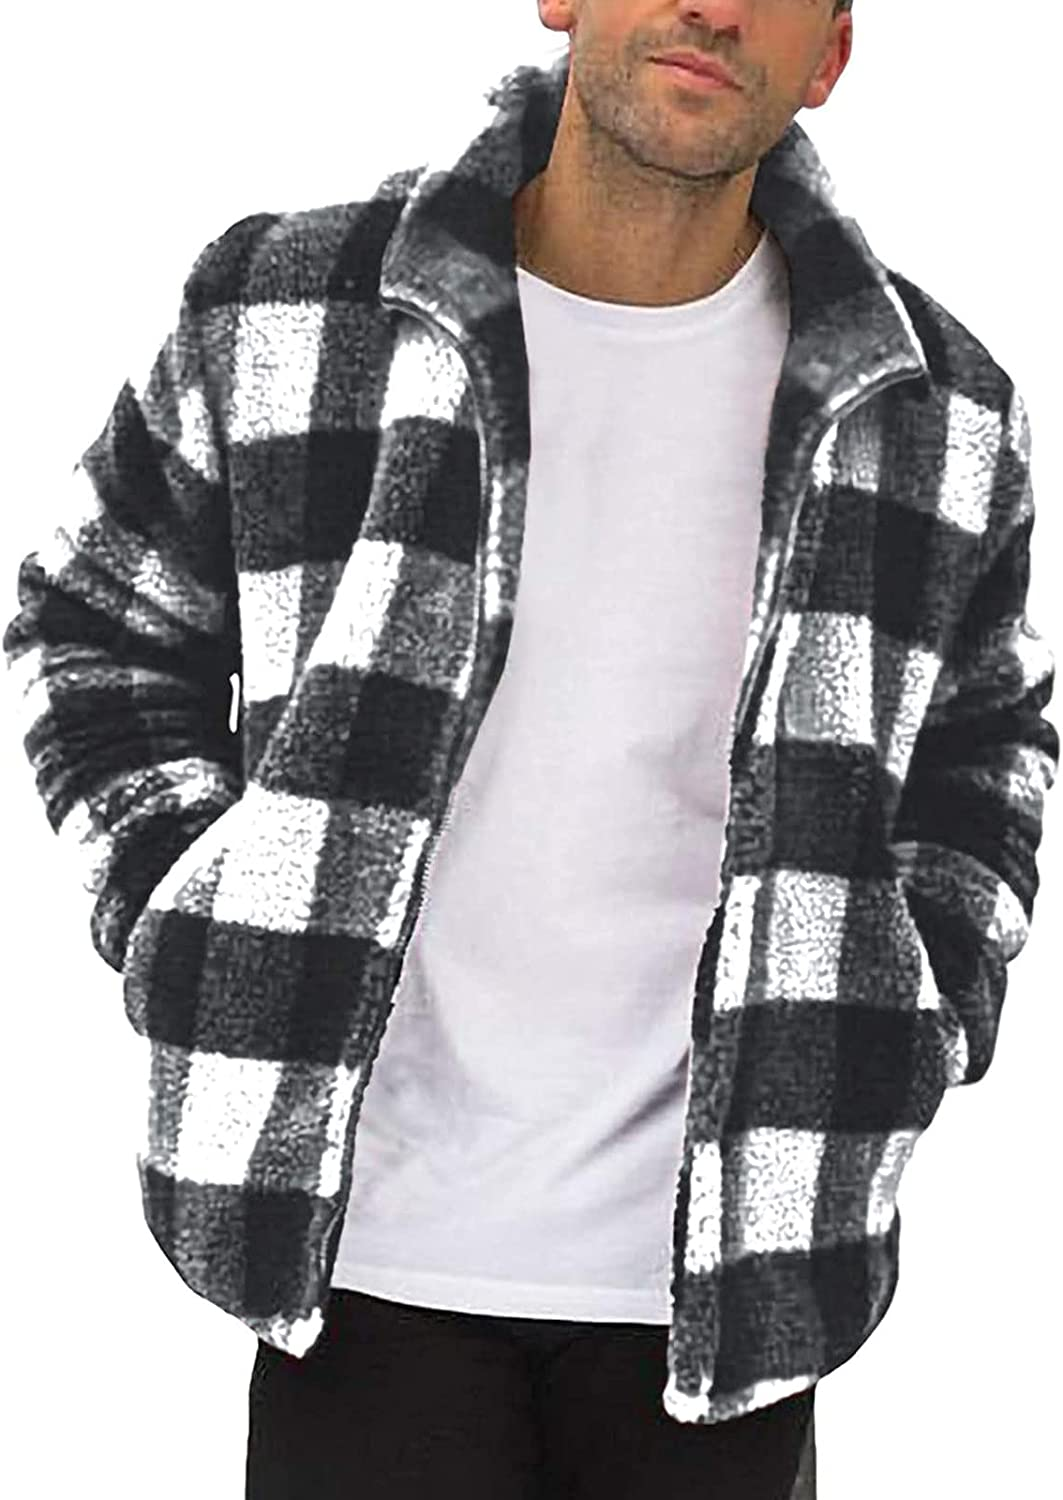 Fluffy Fuzzy Sherpa Jacket for Men Casual Autumn and Winter Fleece Stand Collar Zip up Outwear Cardigan Coat